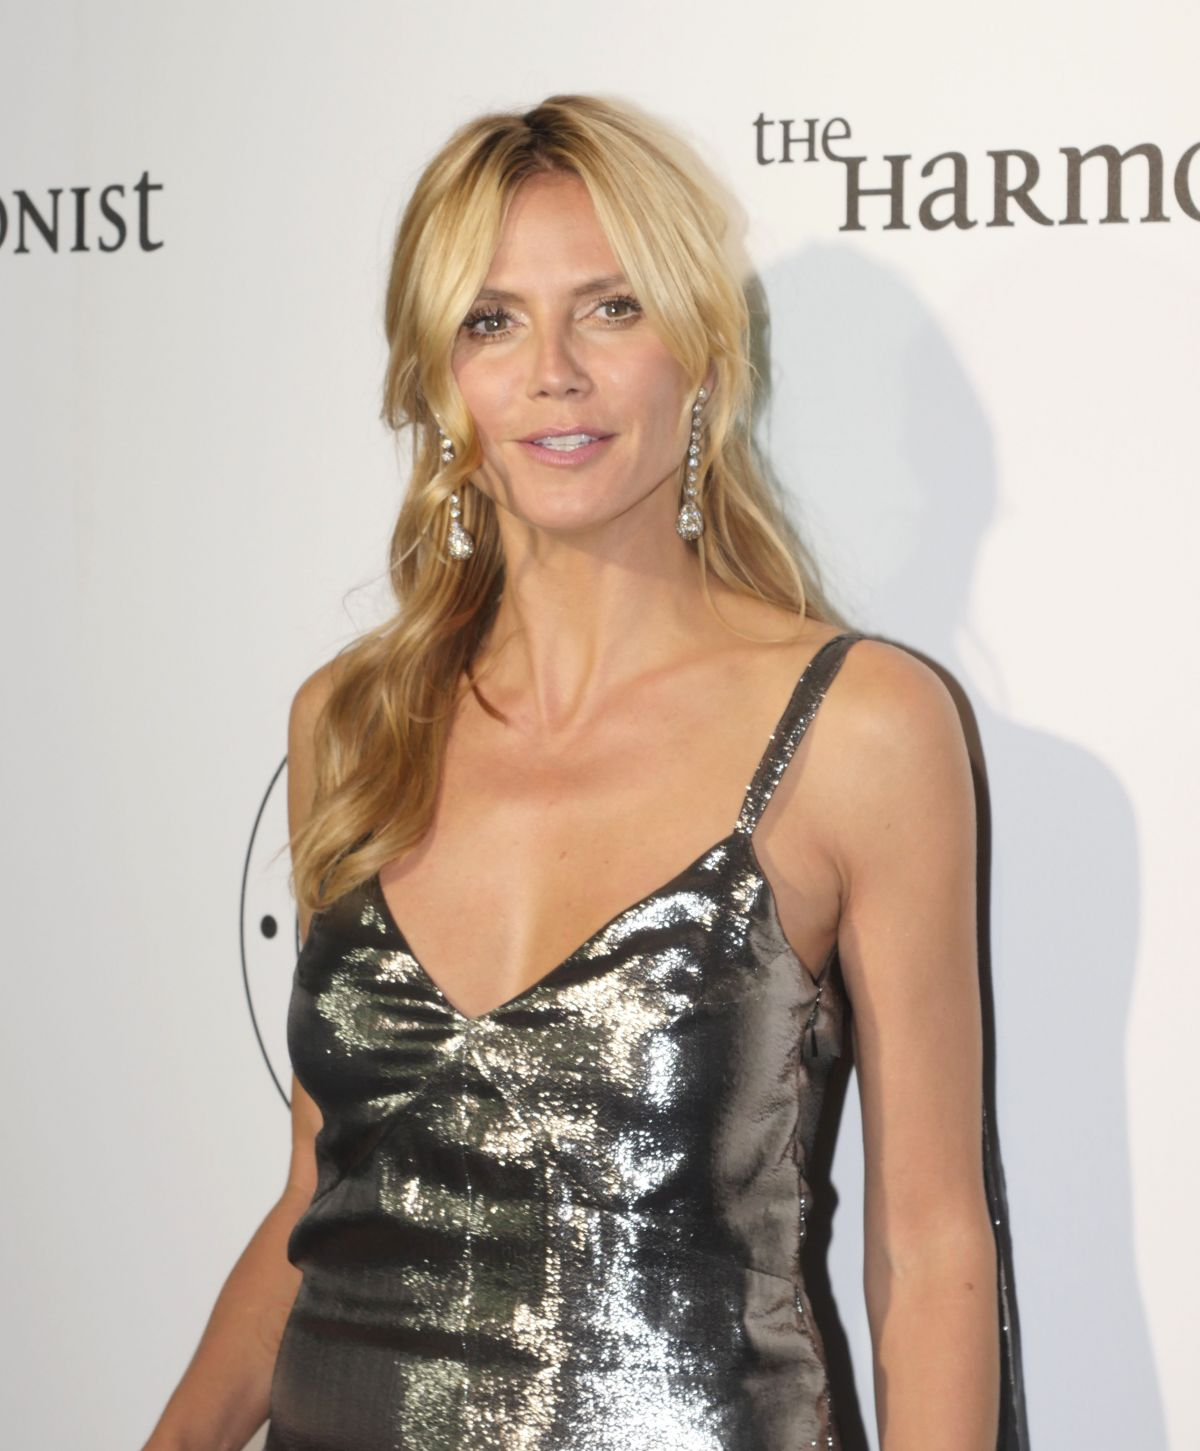 HEIDI KLUM at Harmonist Party at 2016 Cannes Film Festival 05/16/2016 ...